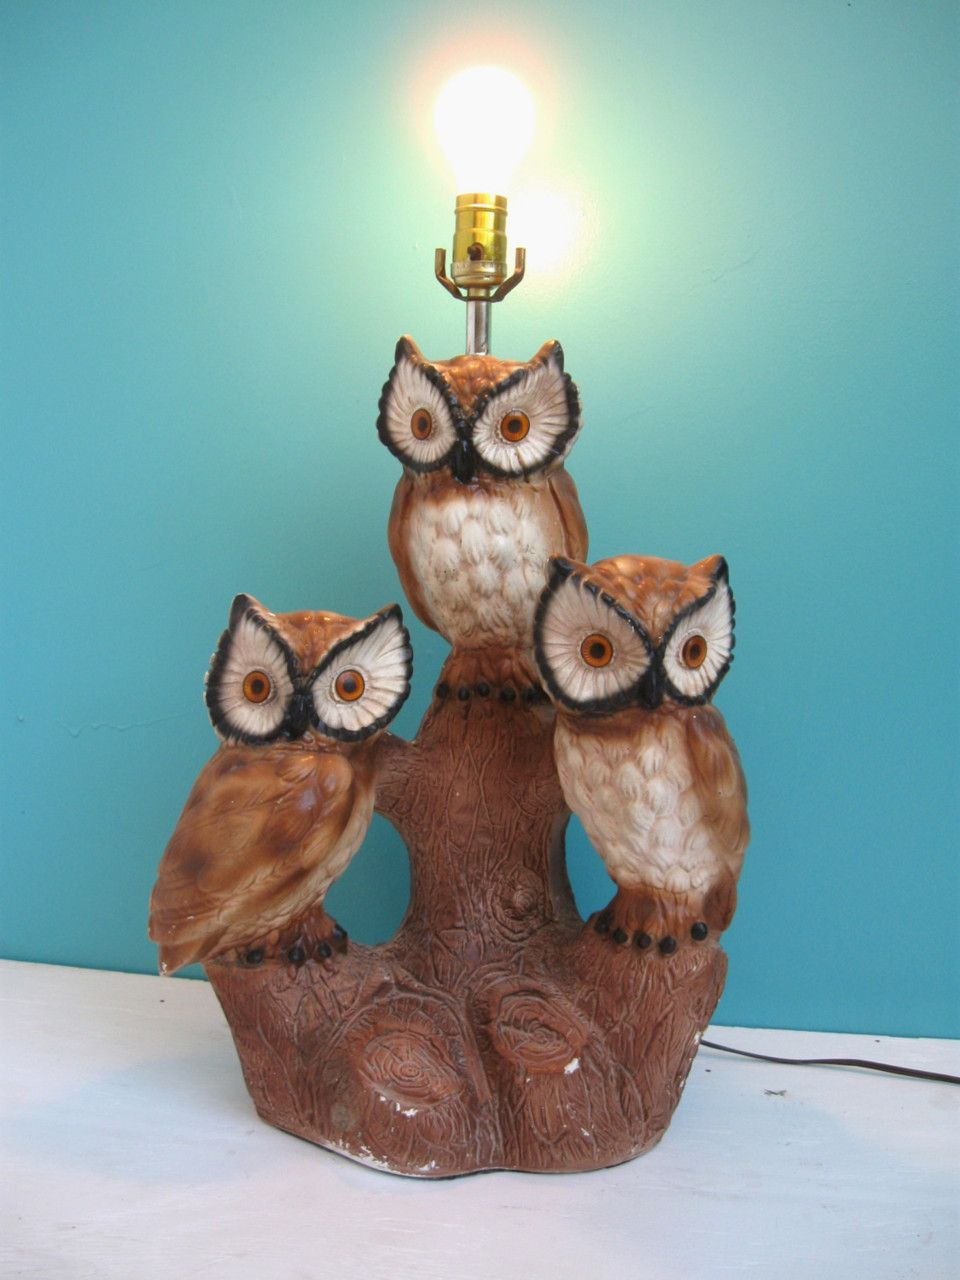 Vintage owl lamps -  Betsy Martin Is This Yours Owl Lampkitsch Artowl Cookiesvintage